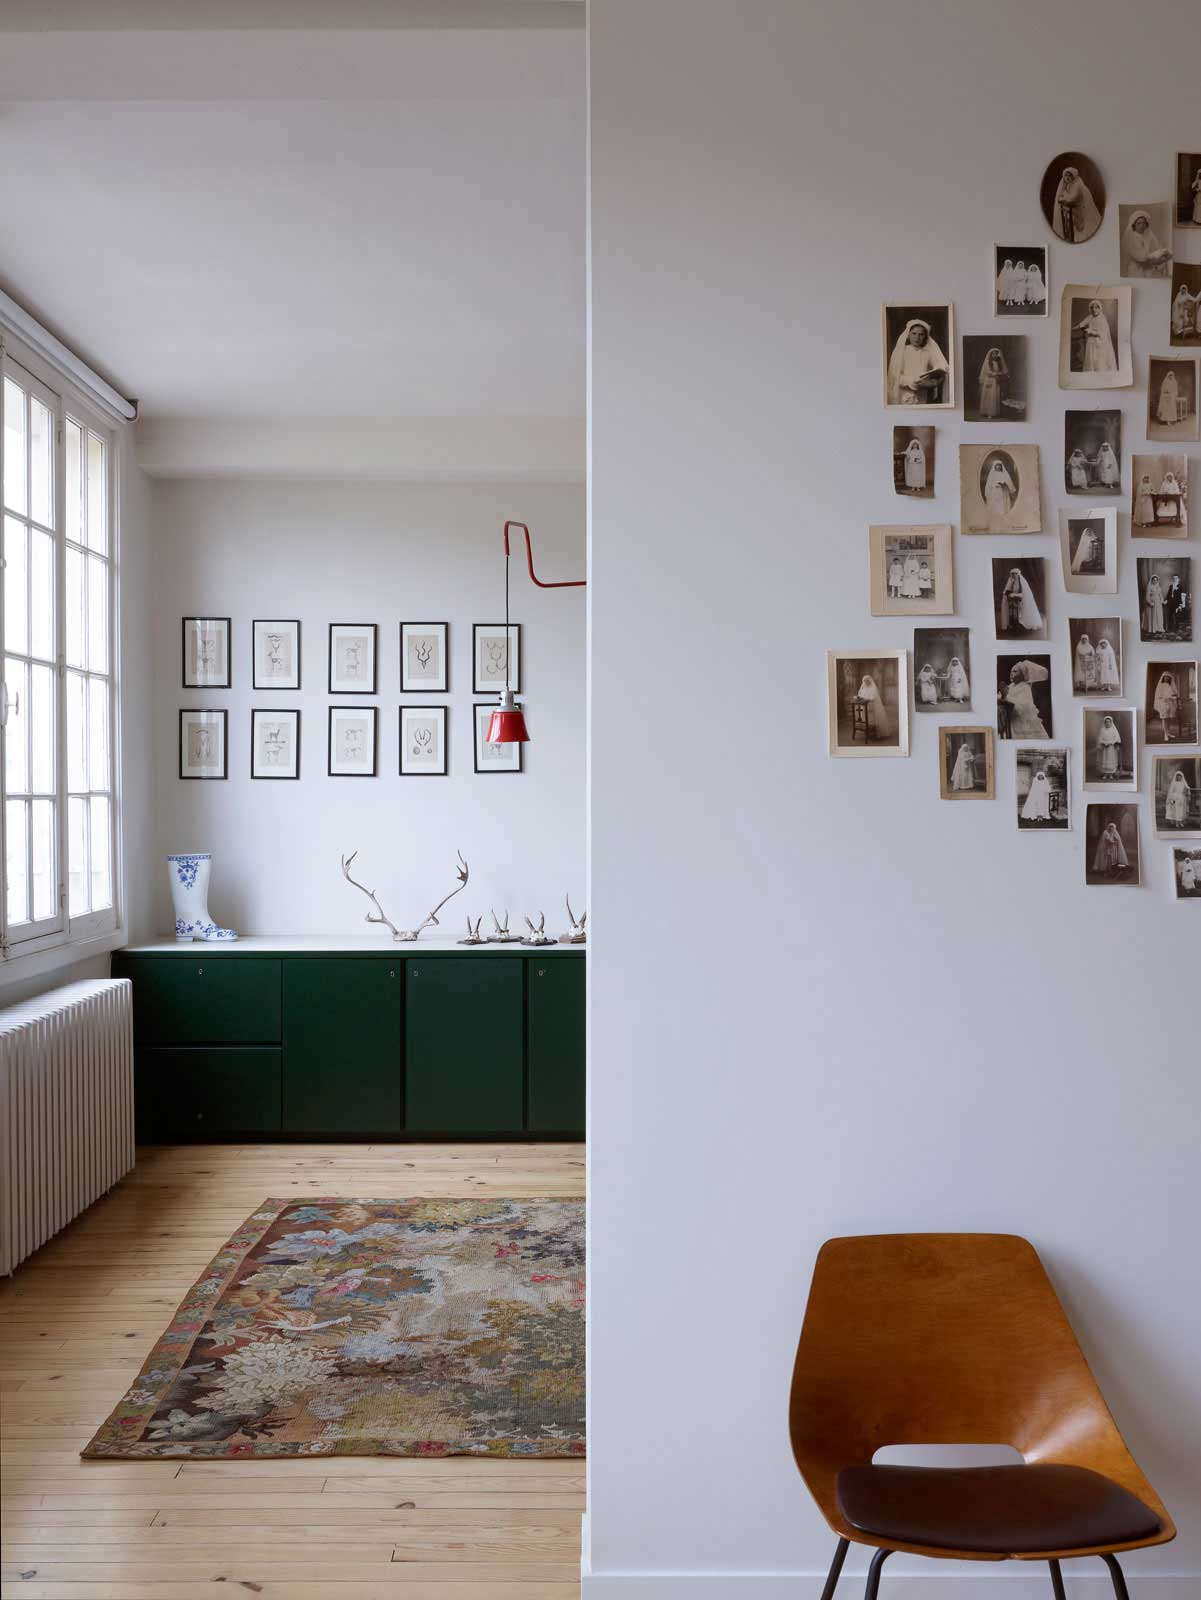 Passage Charles Dallery by Regis Larroque | Yellowtrace